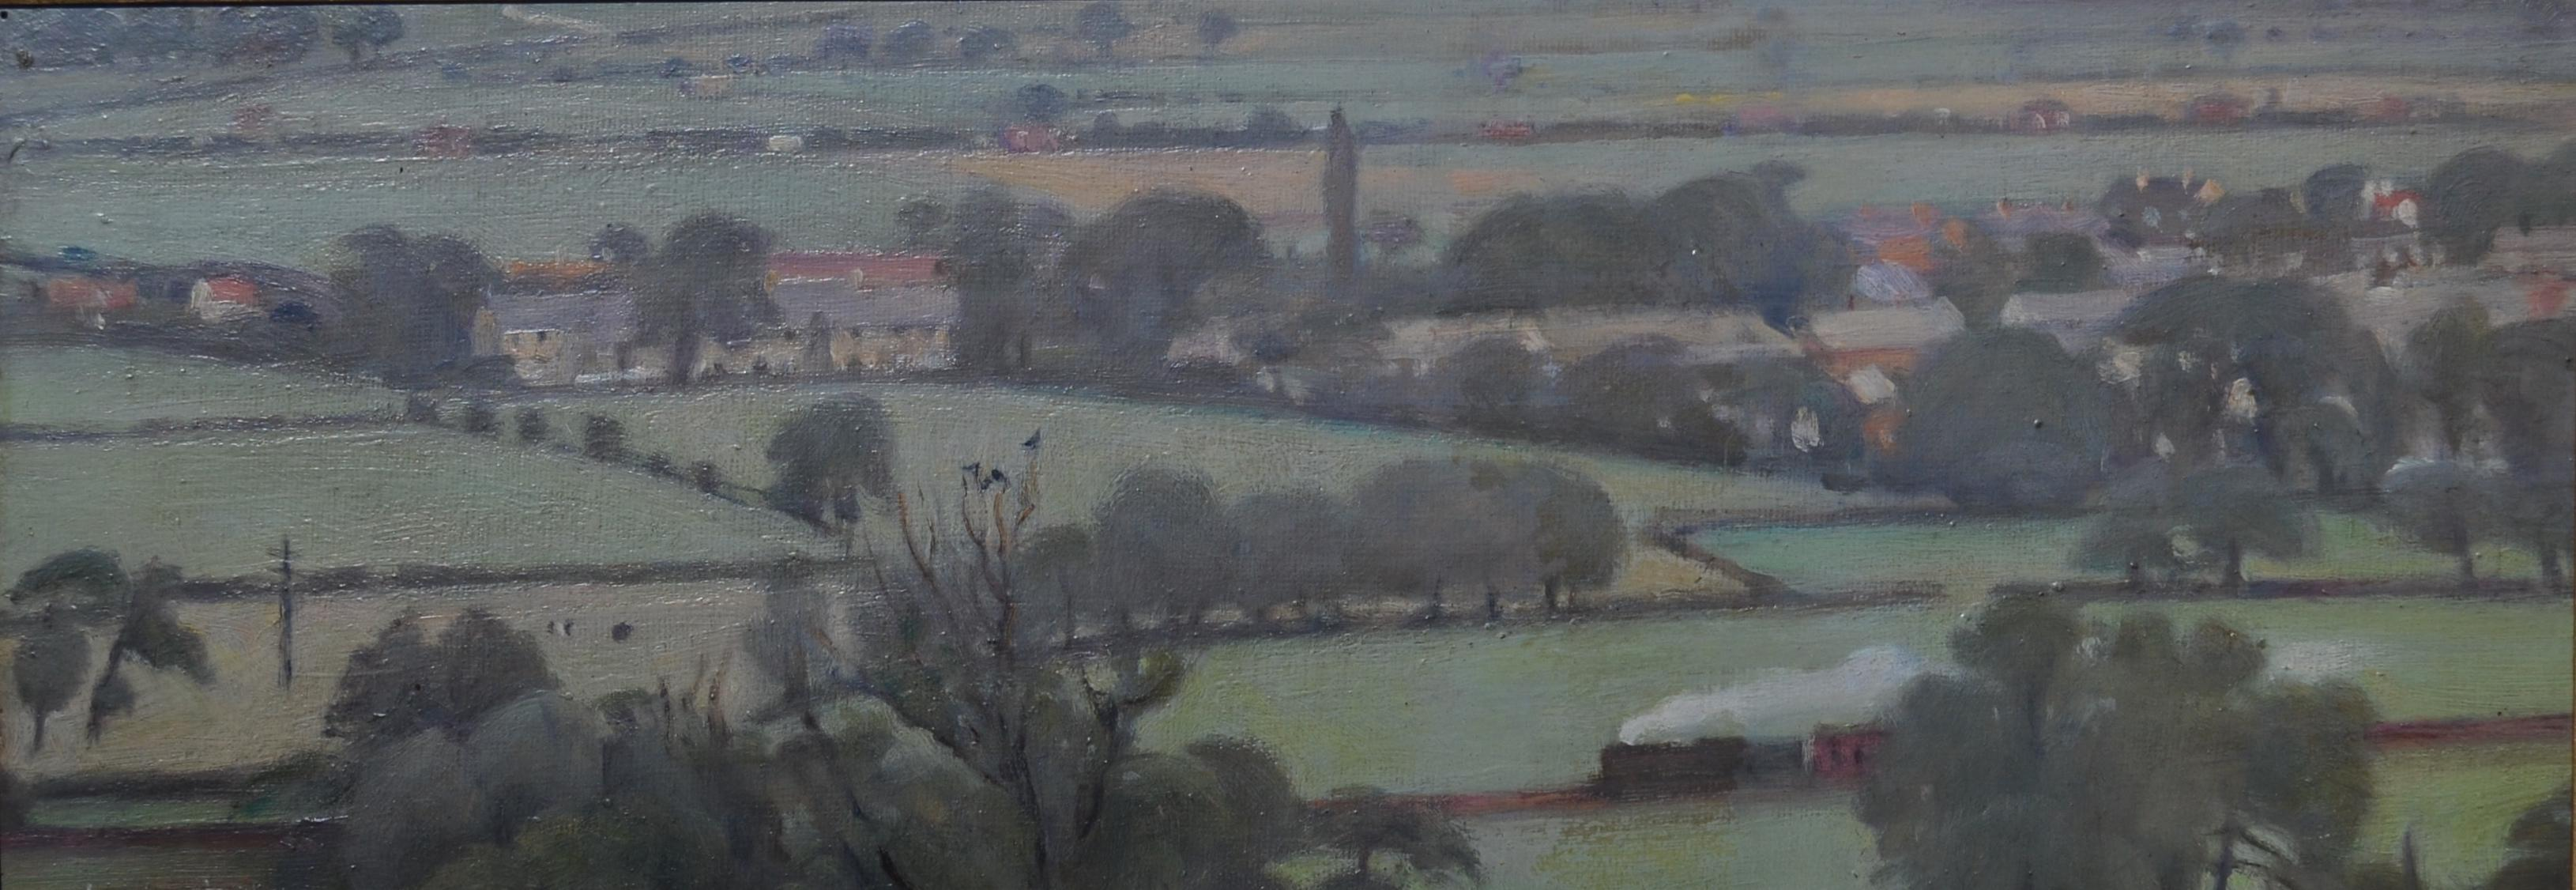 View from Pool Bank - 20th Century Yorkshire landscape oil painting